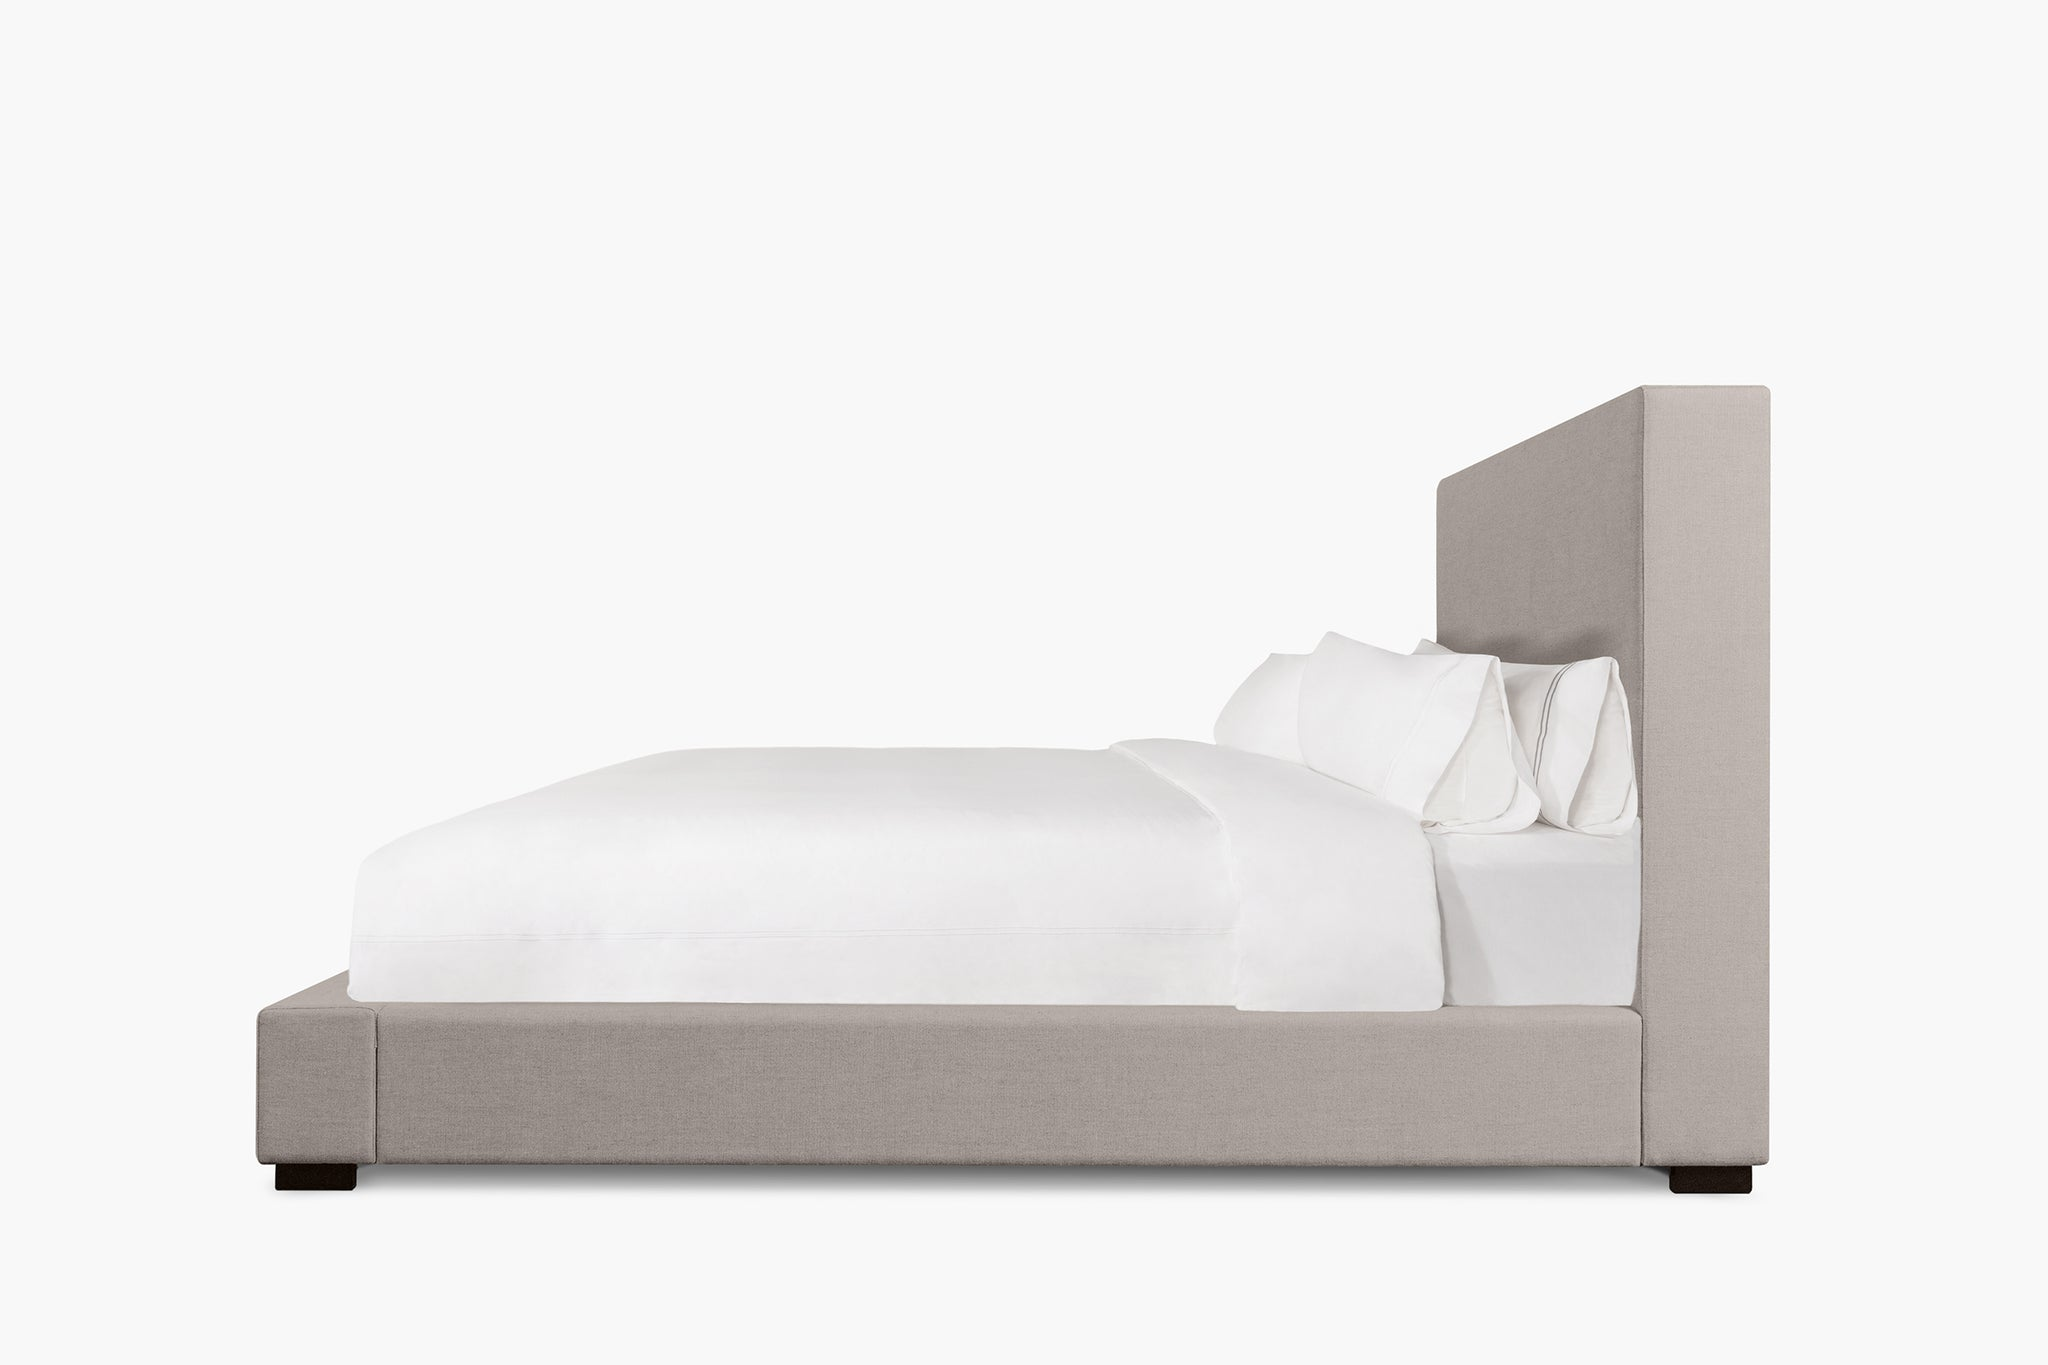 Loma Platform Bed - Extended Headboard Height - thumbnail 3